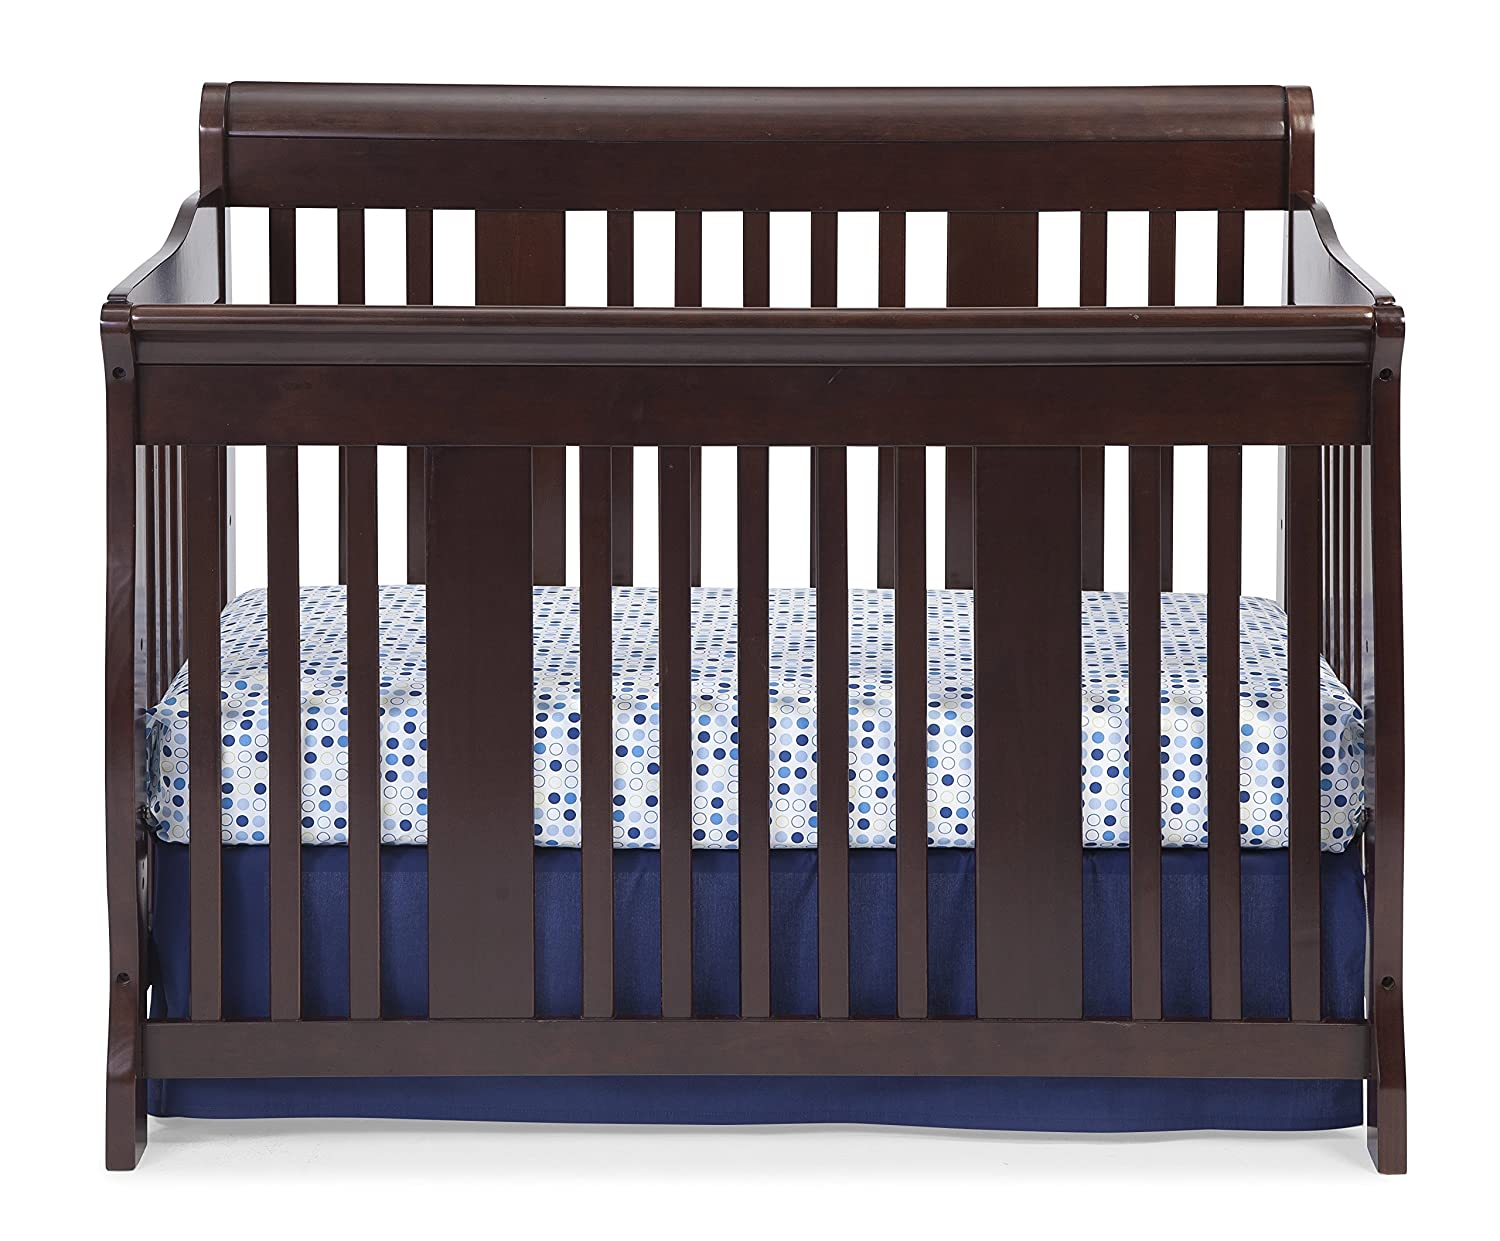 Baby cribs amazon - Amazon Com Stork Craft Tuscany 4 In 1 Convertible Crib Espresso Convertible Cribs Baby